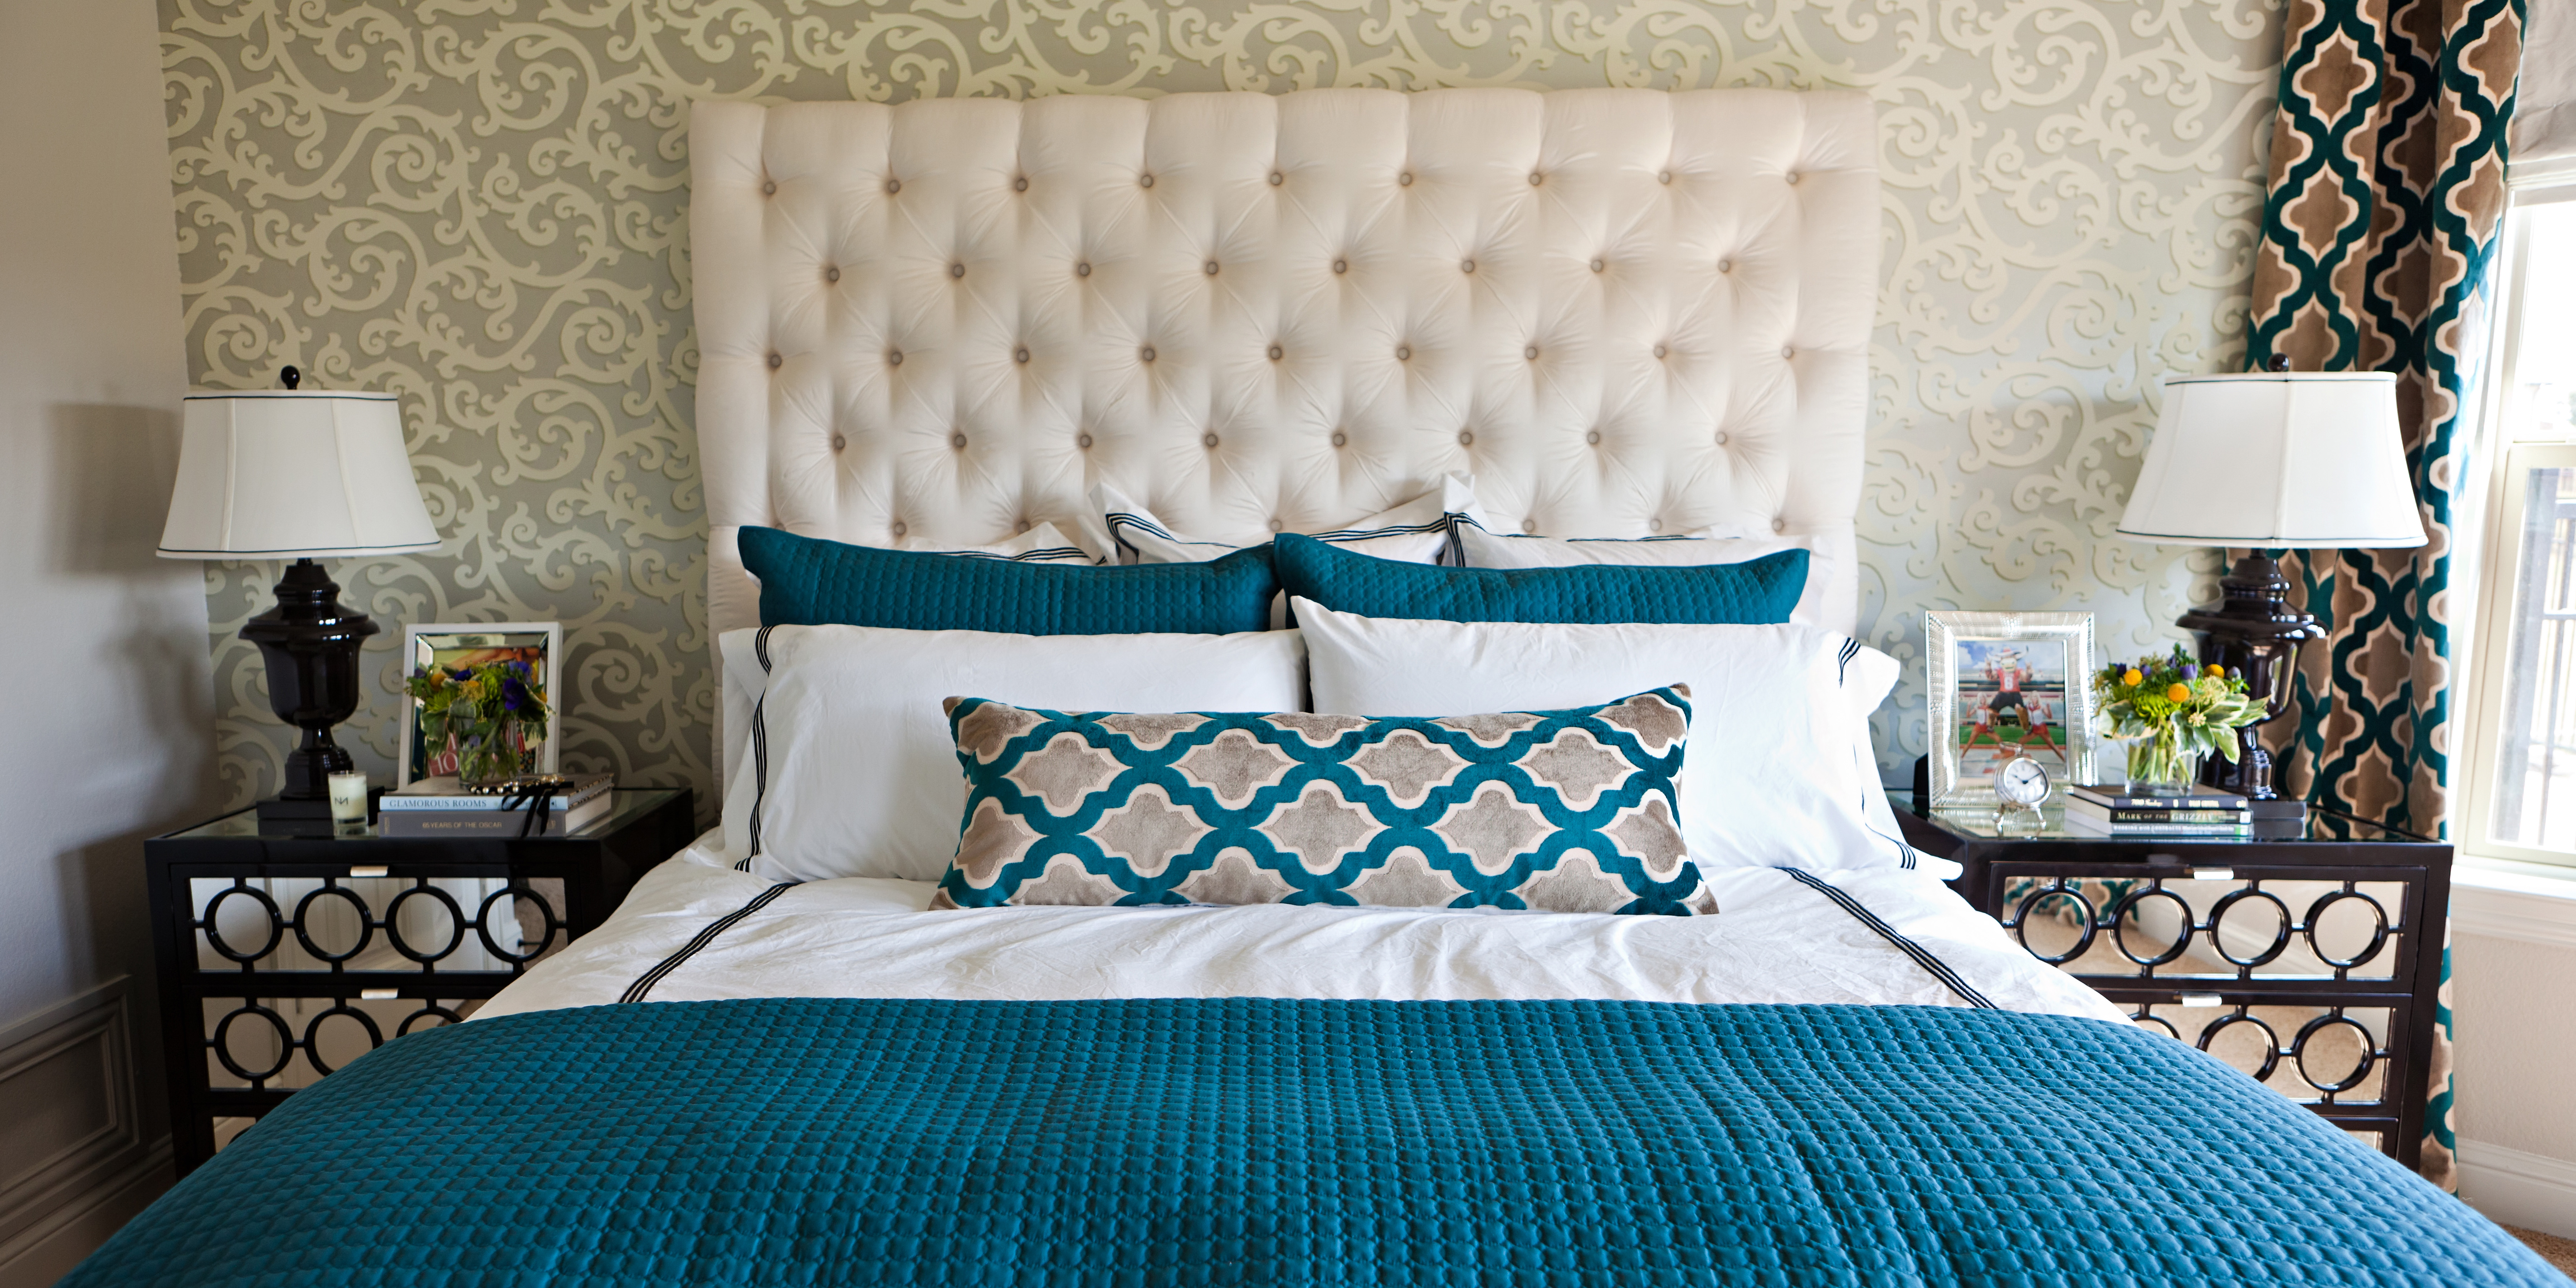 Best Cool Teal Home Decor For Spring And Summer This Month